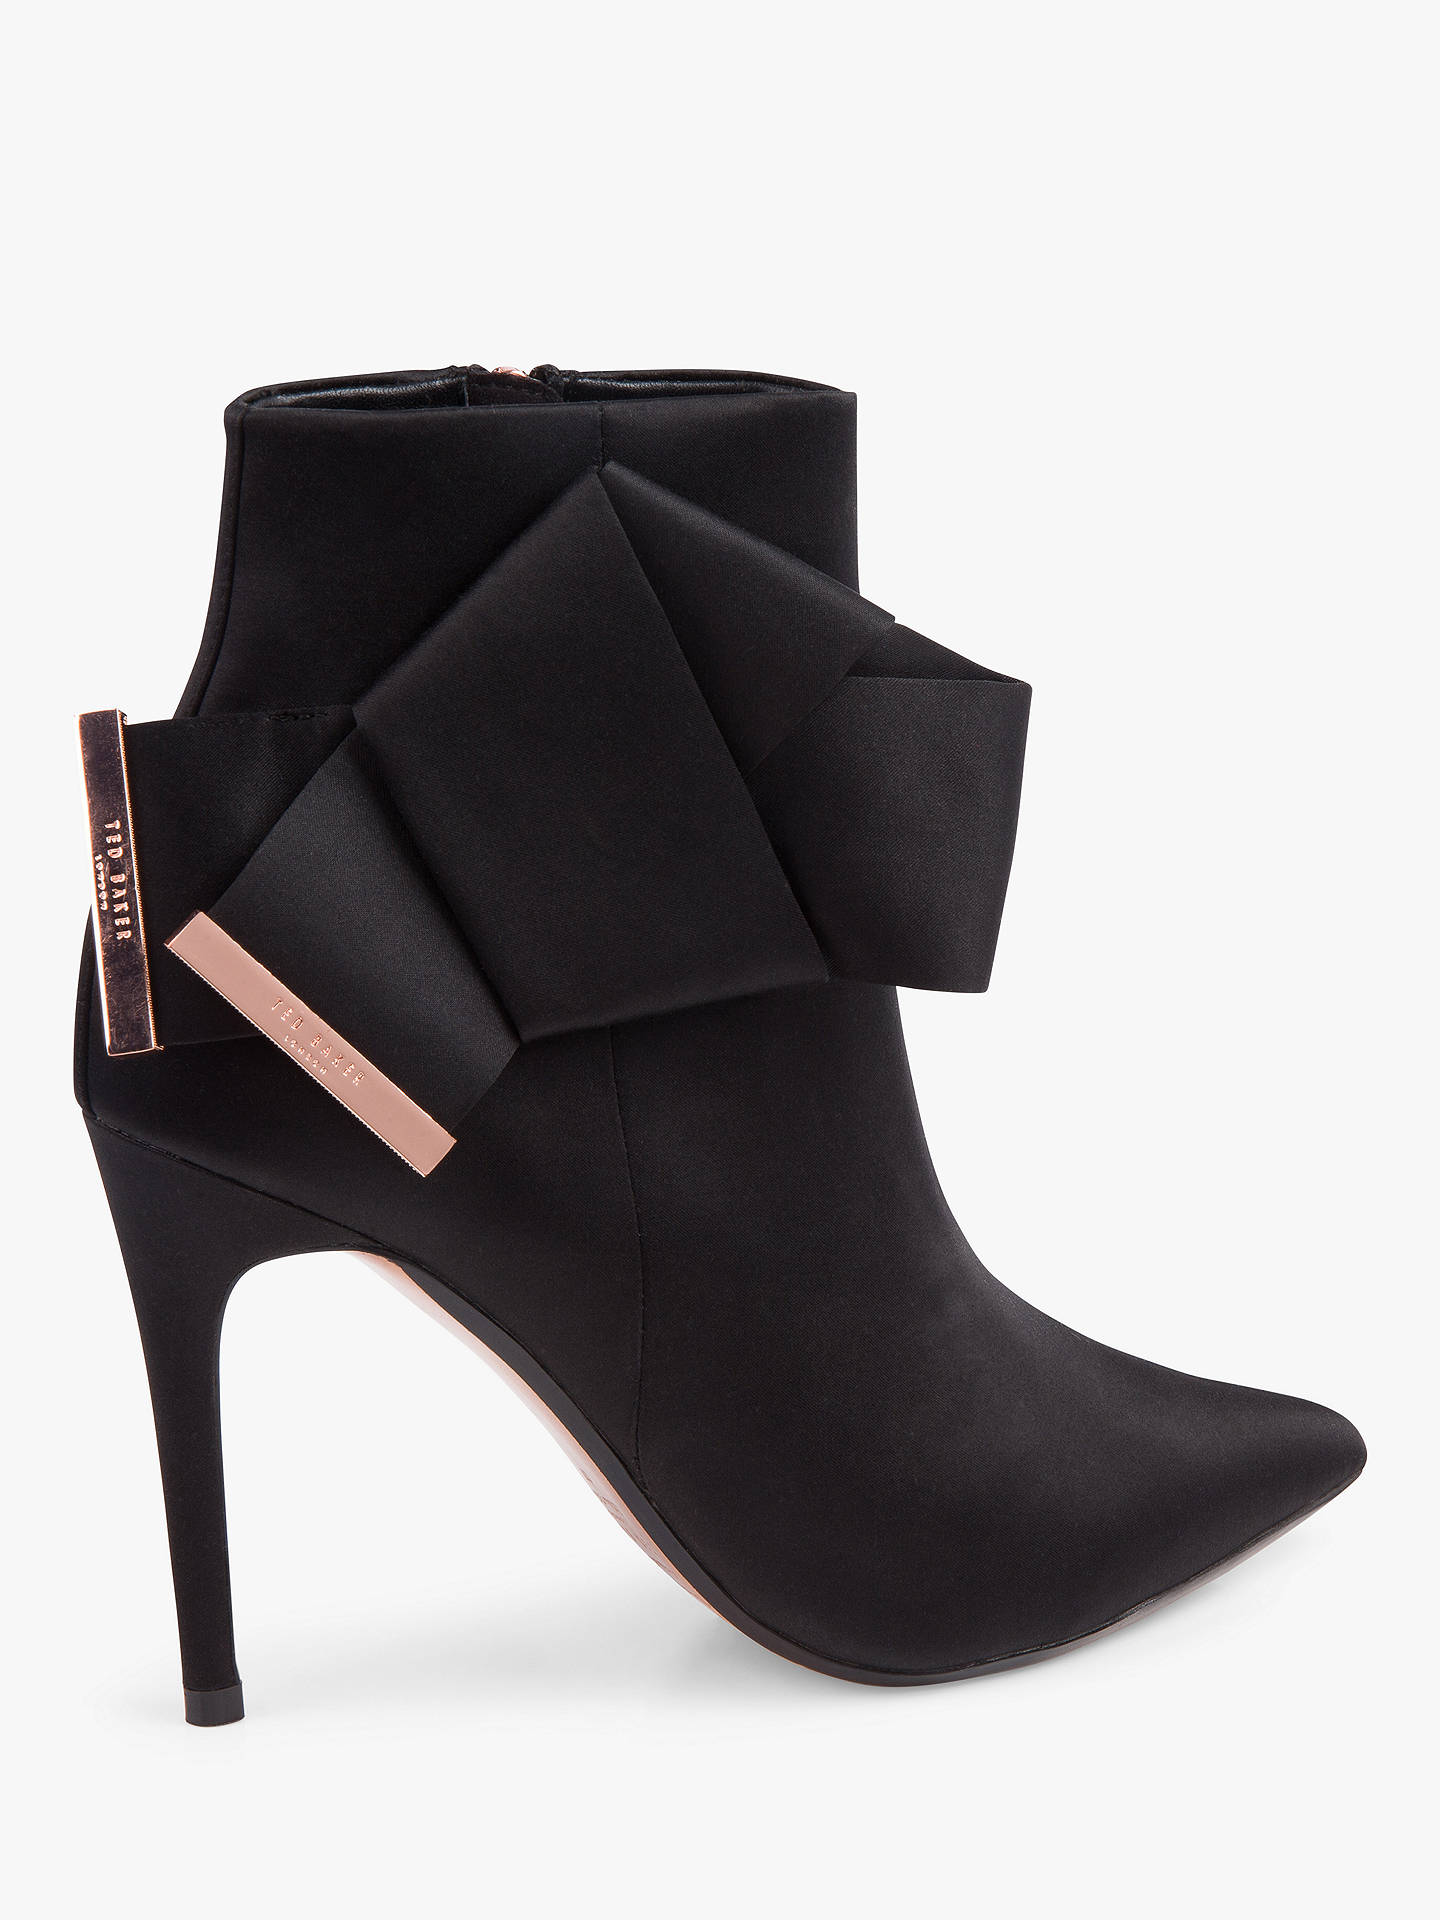 c8ea6ff3271 ... Buy Ted Baker Celiah High Stiletto Heel Ankle Boots